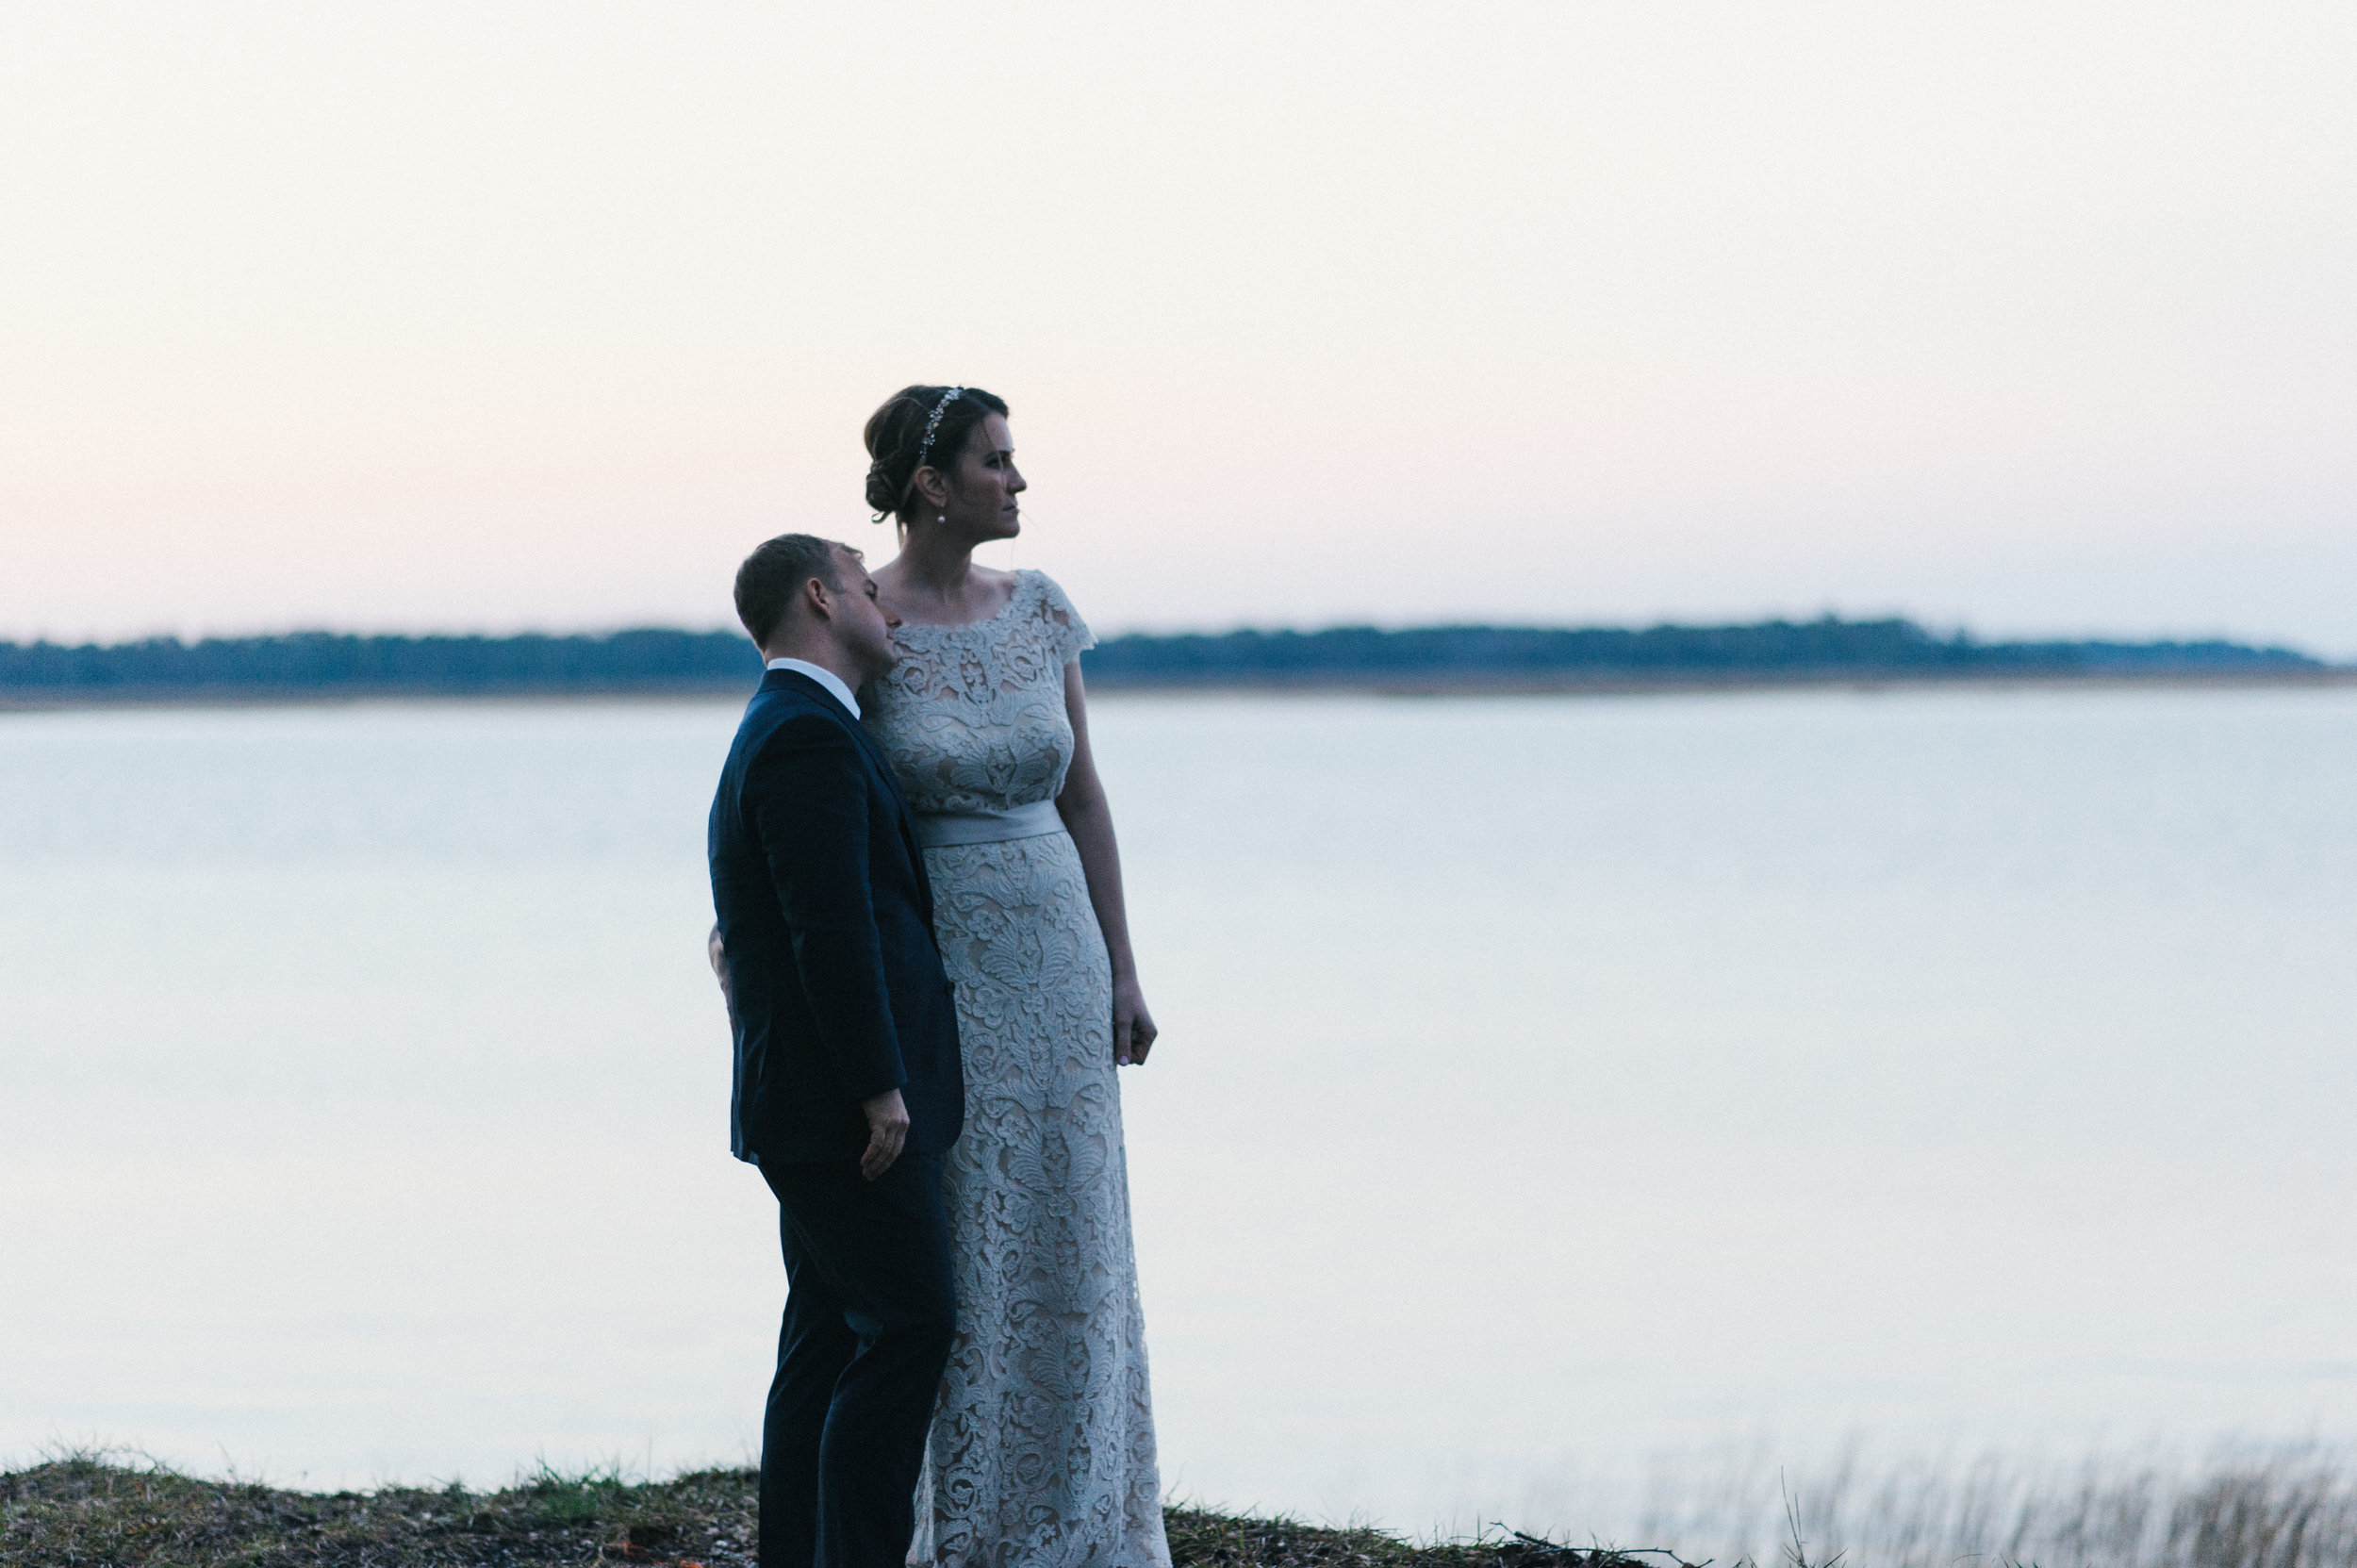 emily-and-david-daufuskie-island-wedding-december-wedding-meg-hill-photo- (633 of 728).jpg